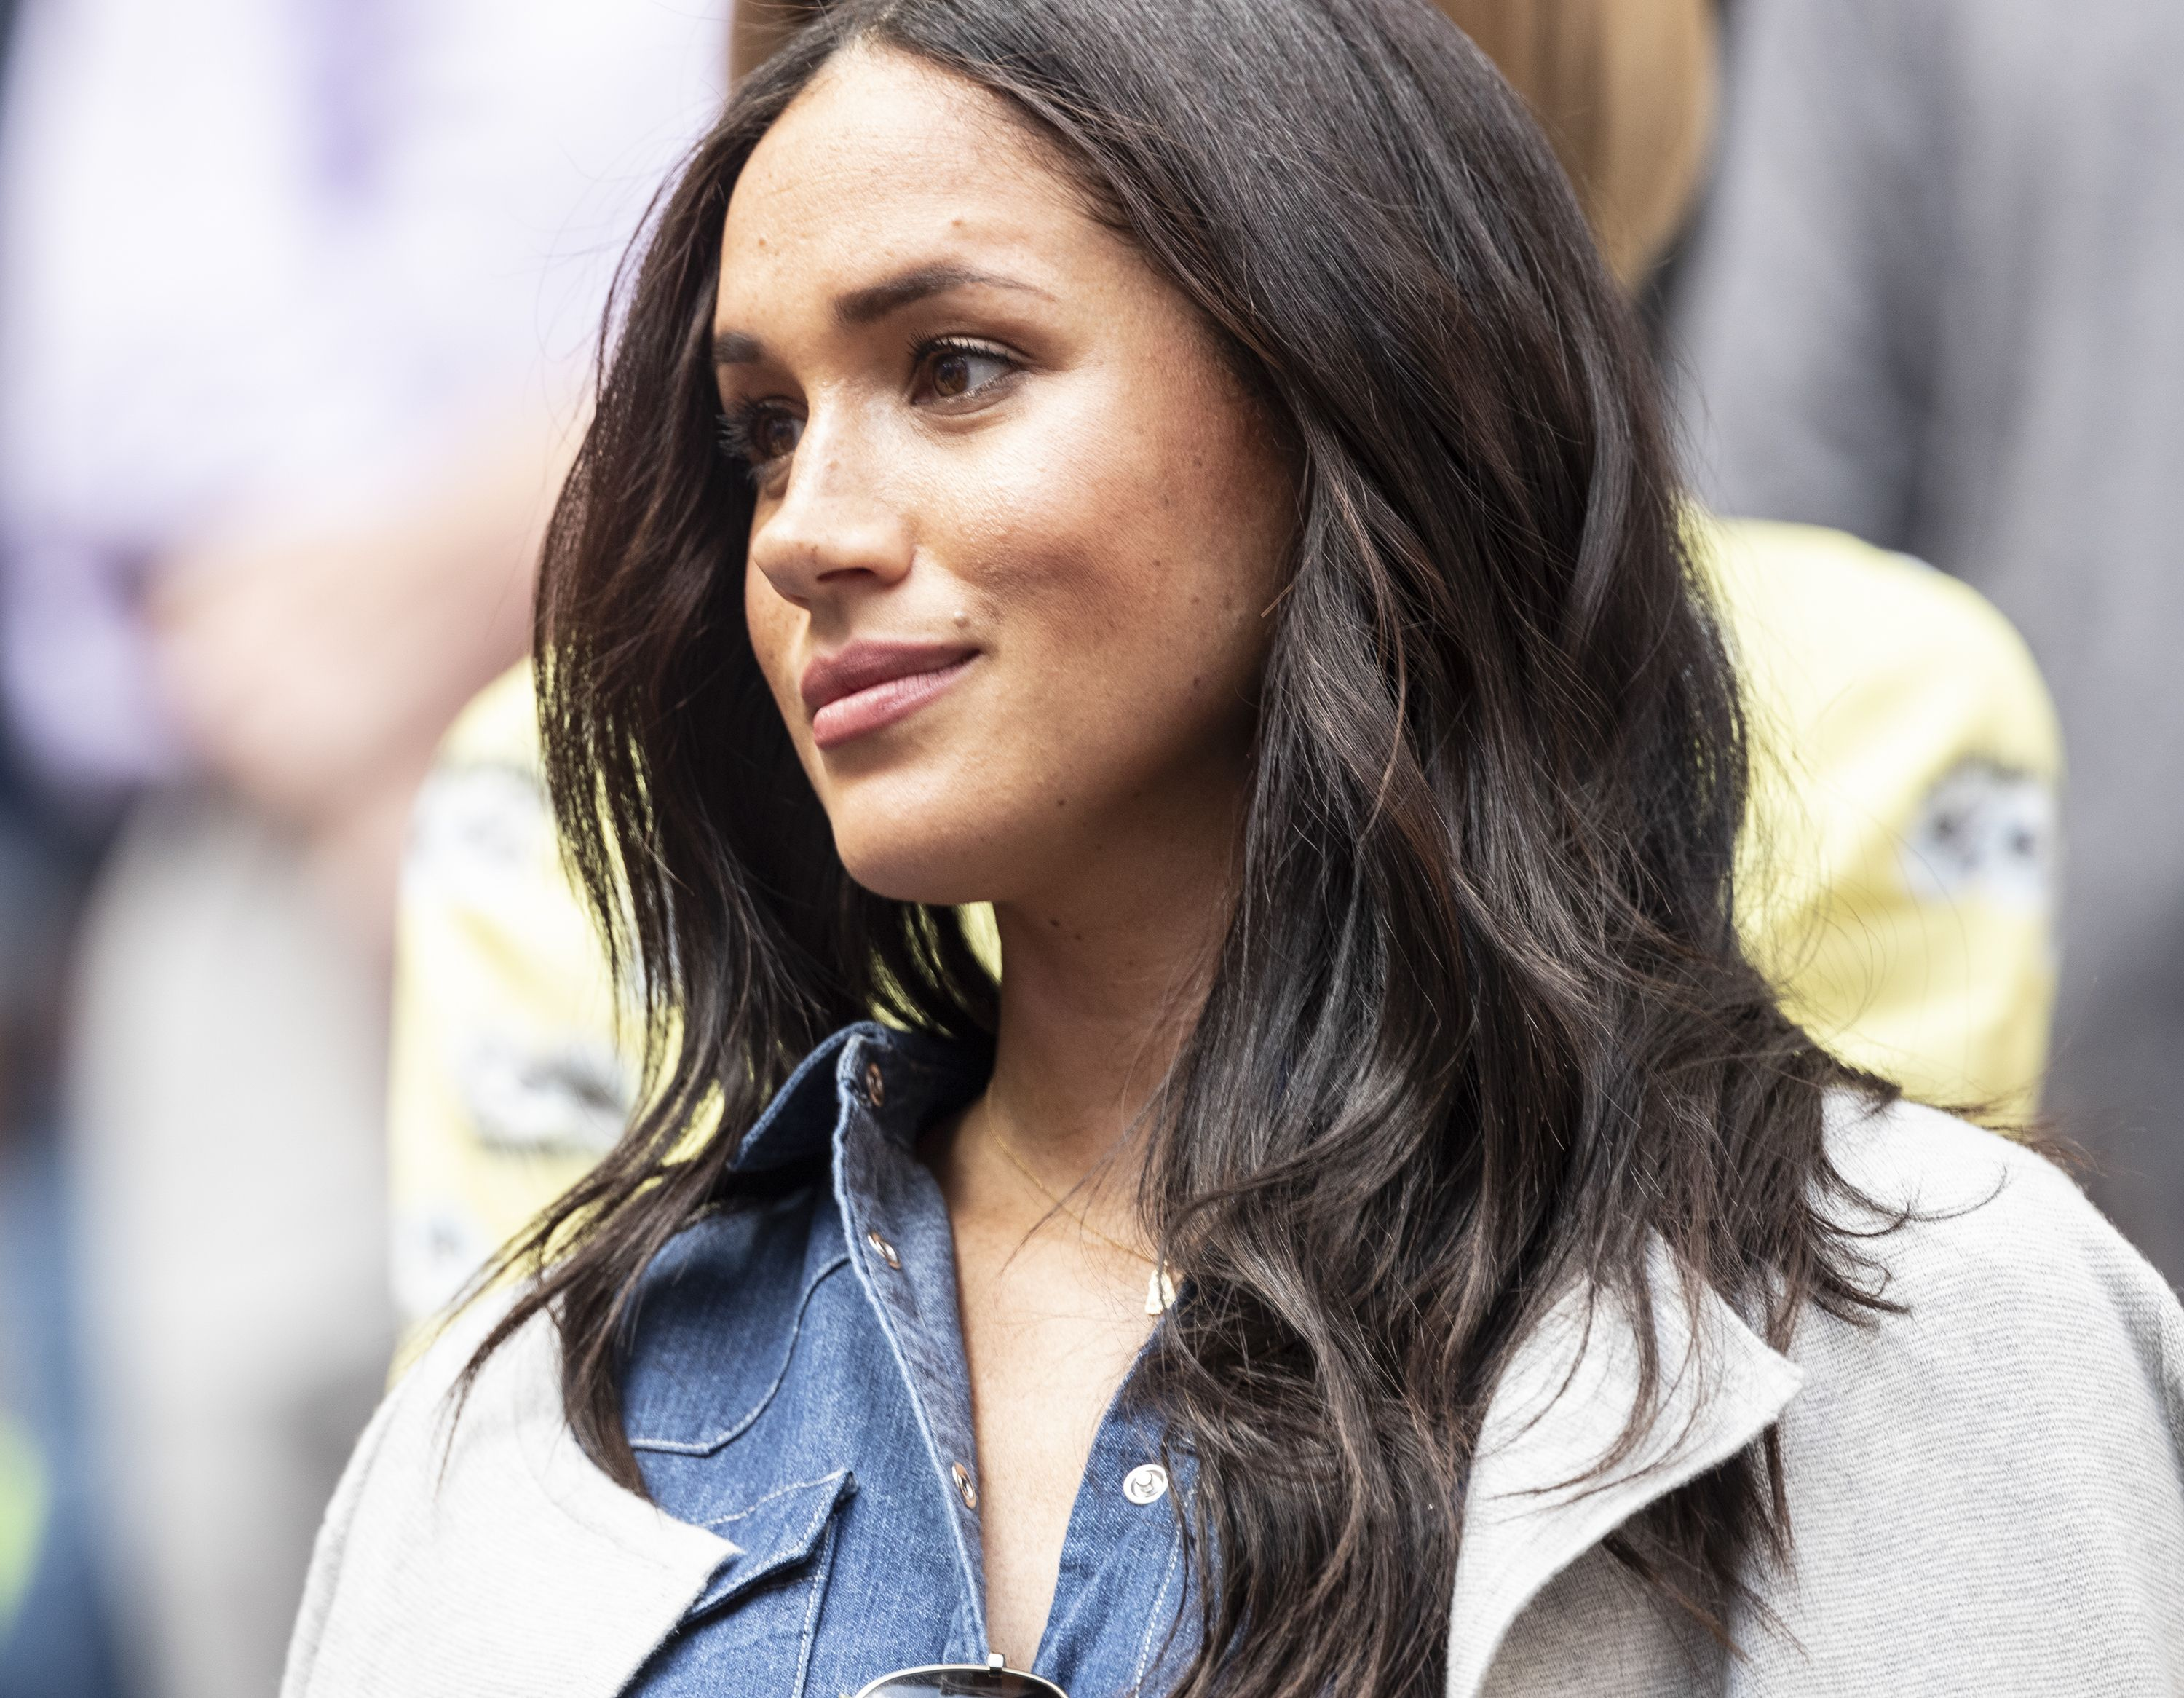 In South Africa, Meghan Markle Will Turn Her Attention to Women's Empowerment